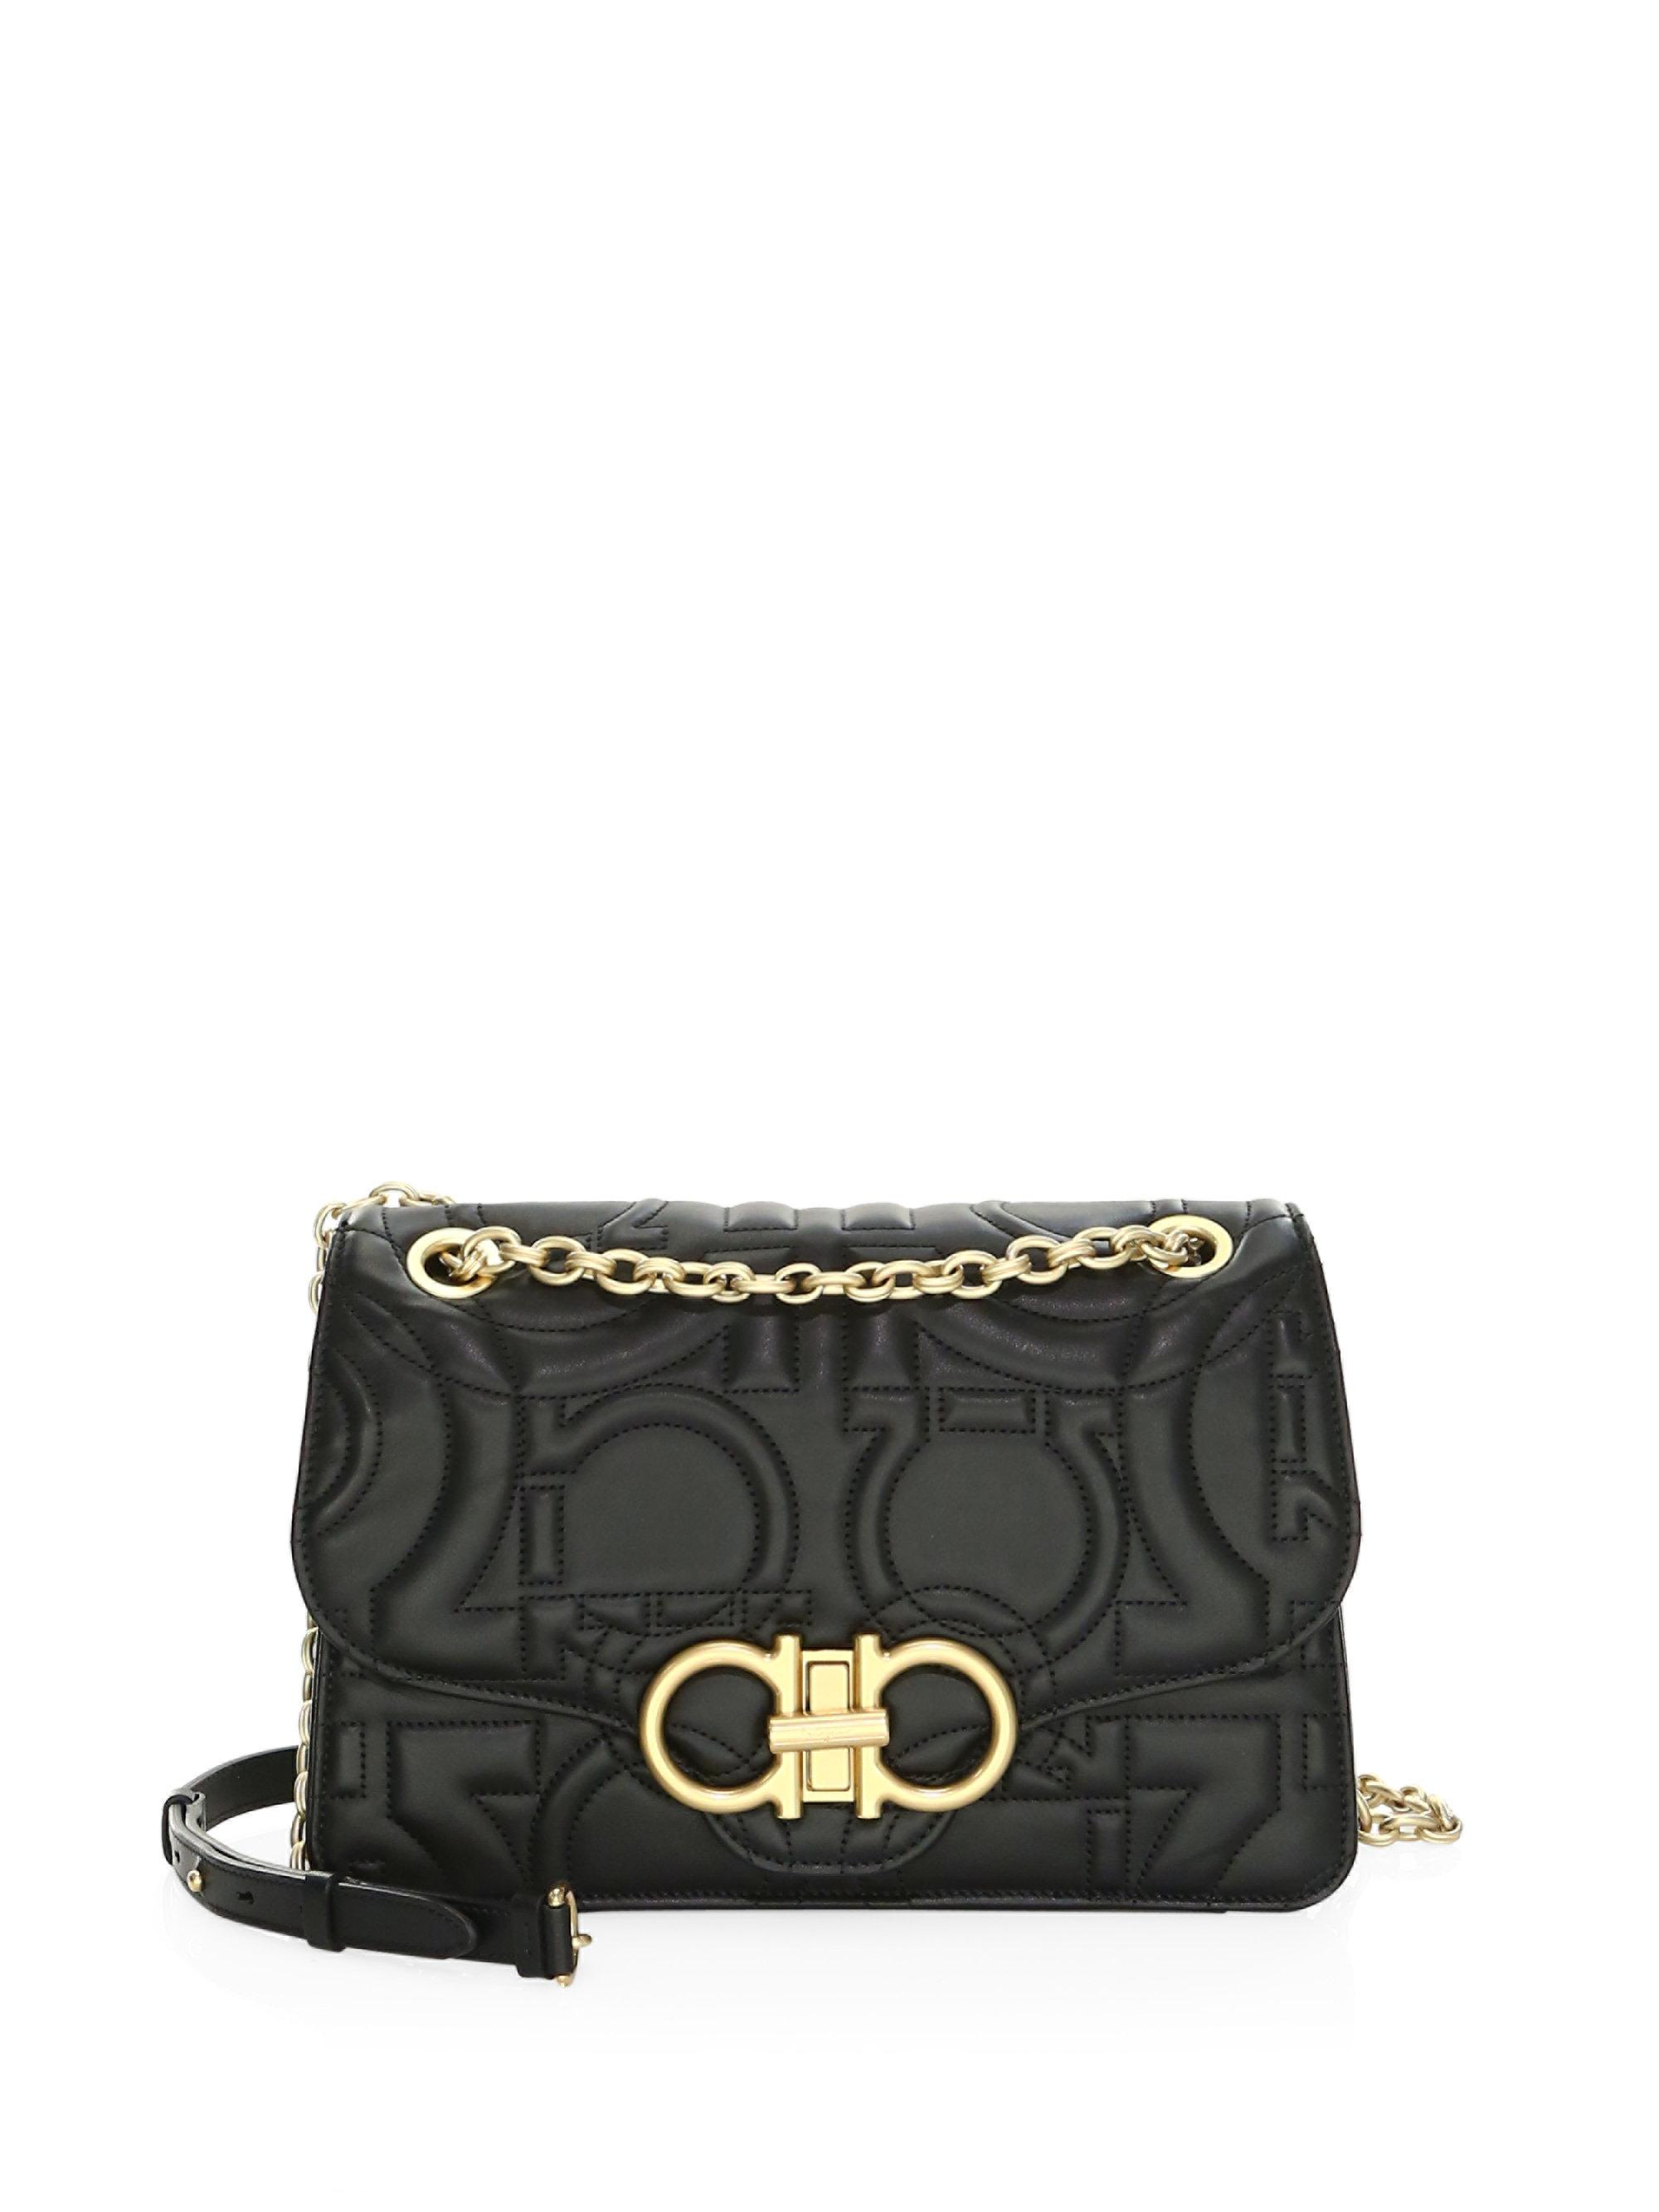 094a37ef2508 Lyst - Ferragamo Large Quilted Flap Leather Crossbody Bag in Black